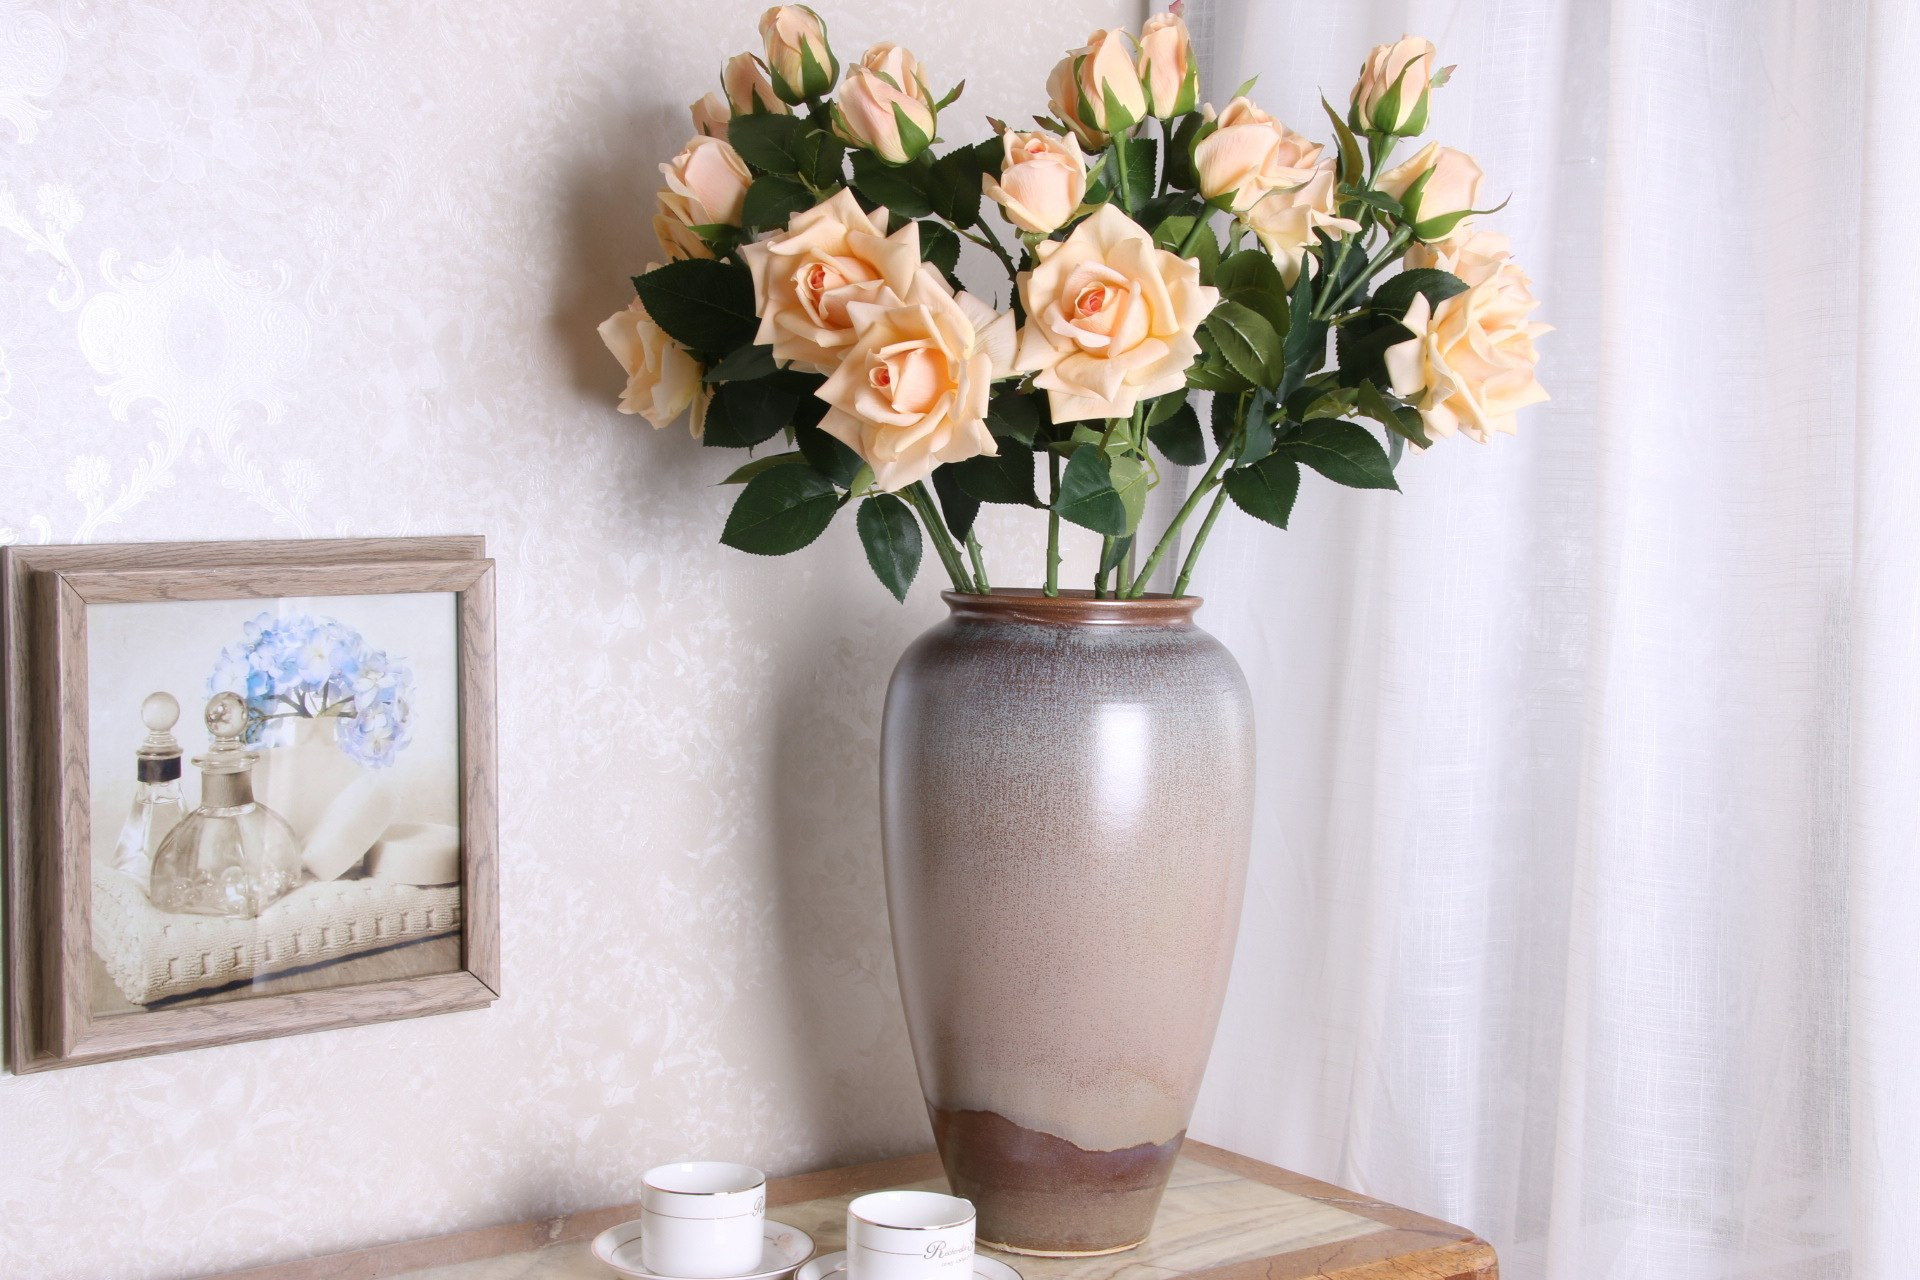 window sill vases of 3pcs moisturizing roses 3 heads silk flower h q wedding bouquet for other descriptionbecause every branch is too long we will bend them for package when you receive the product straightened it